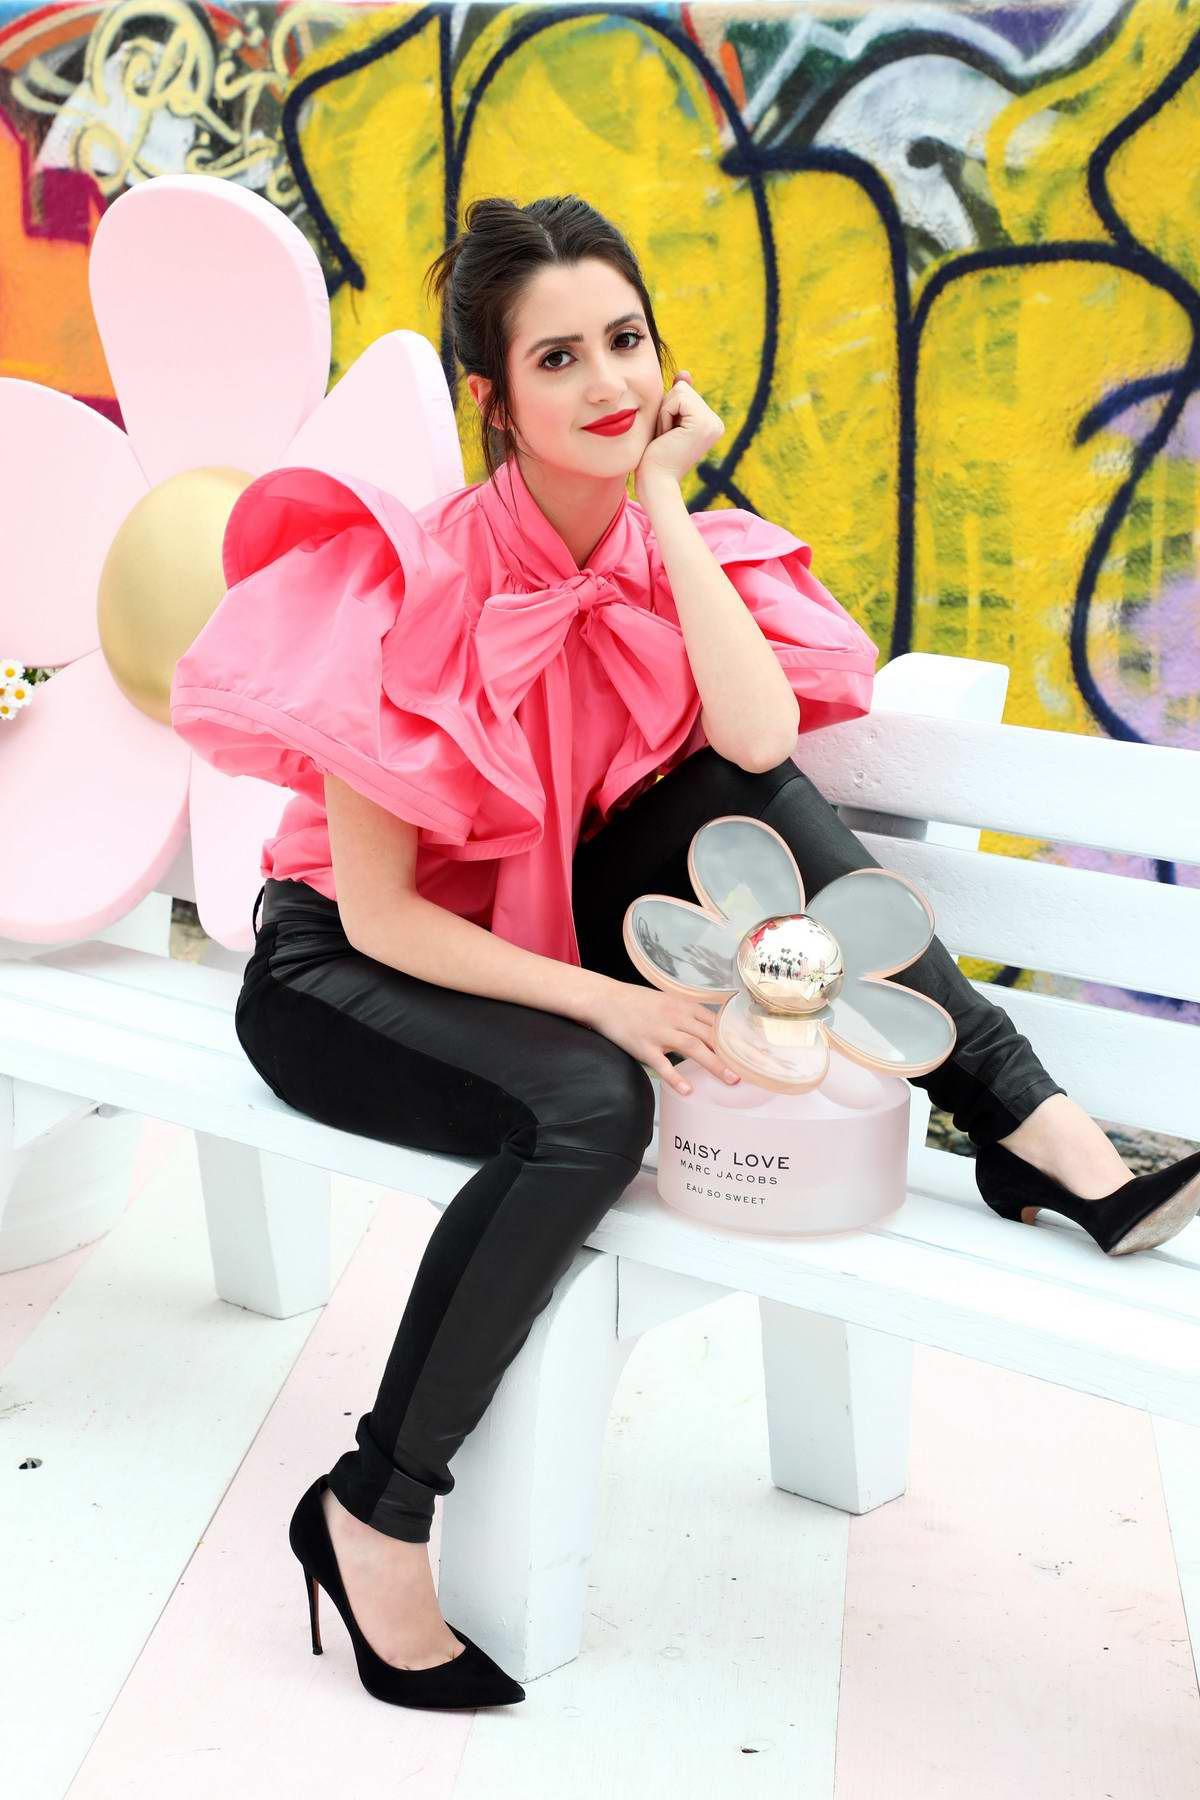 Laura Marano attends Marc Jacobs Daisy Love 'So Sweet' Fragrance Popup Event in Los Angeles